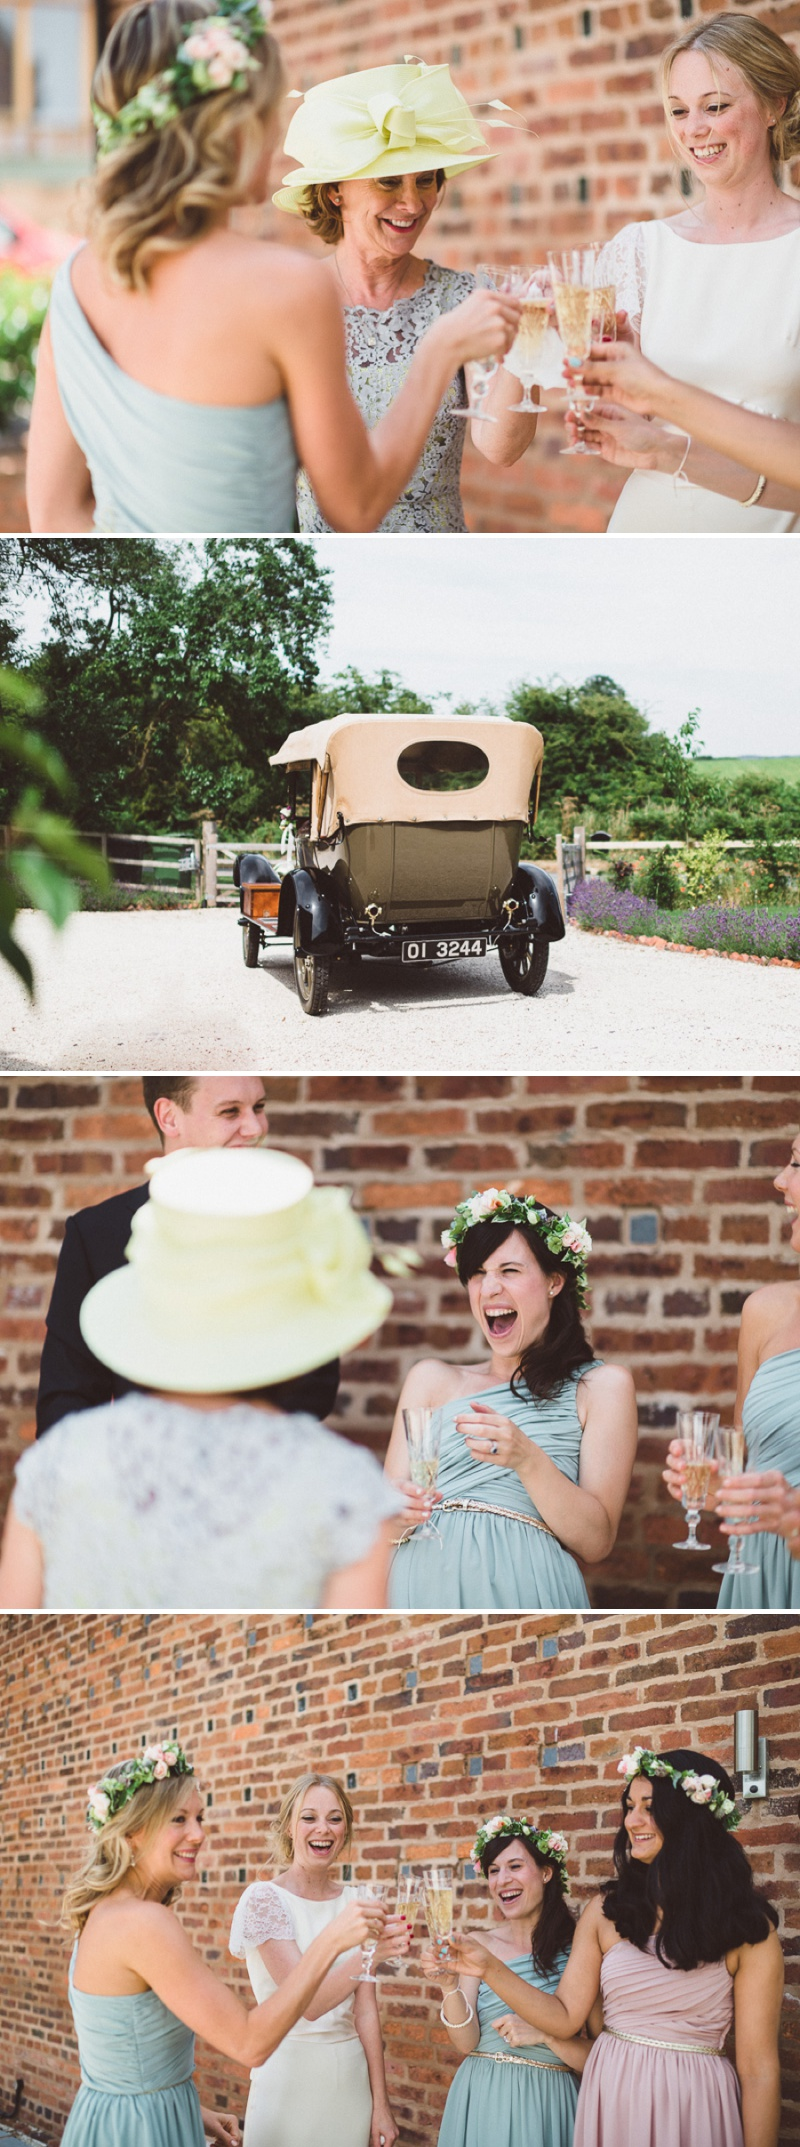 A Beautiful Bohemian Back Garden English Wedding With A Silk Charlie Brear Dress With Lace Cap Sleeves And Flower Crowns From Rhys Parker Photography._0006